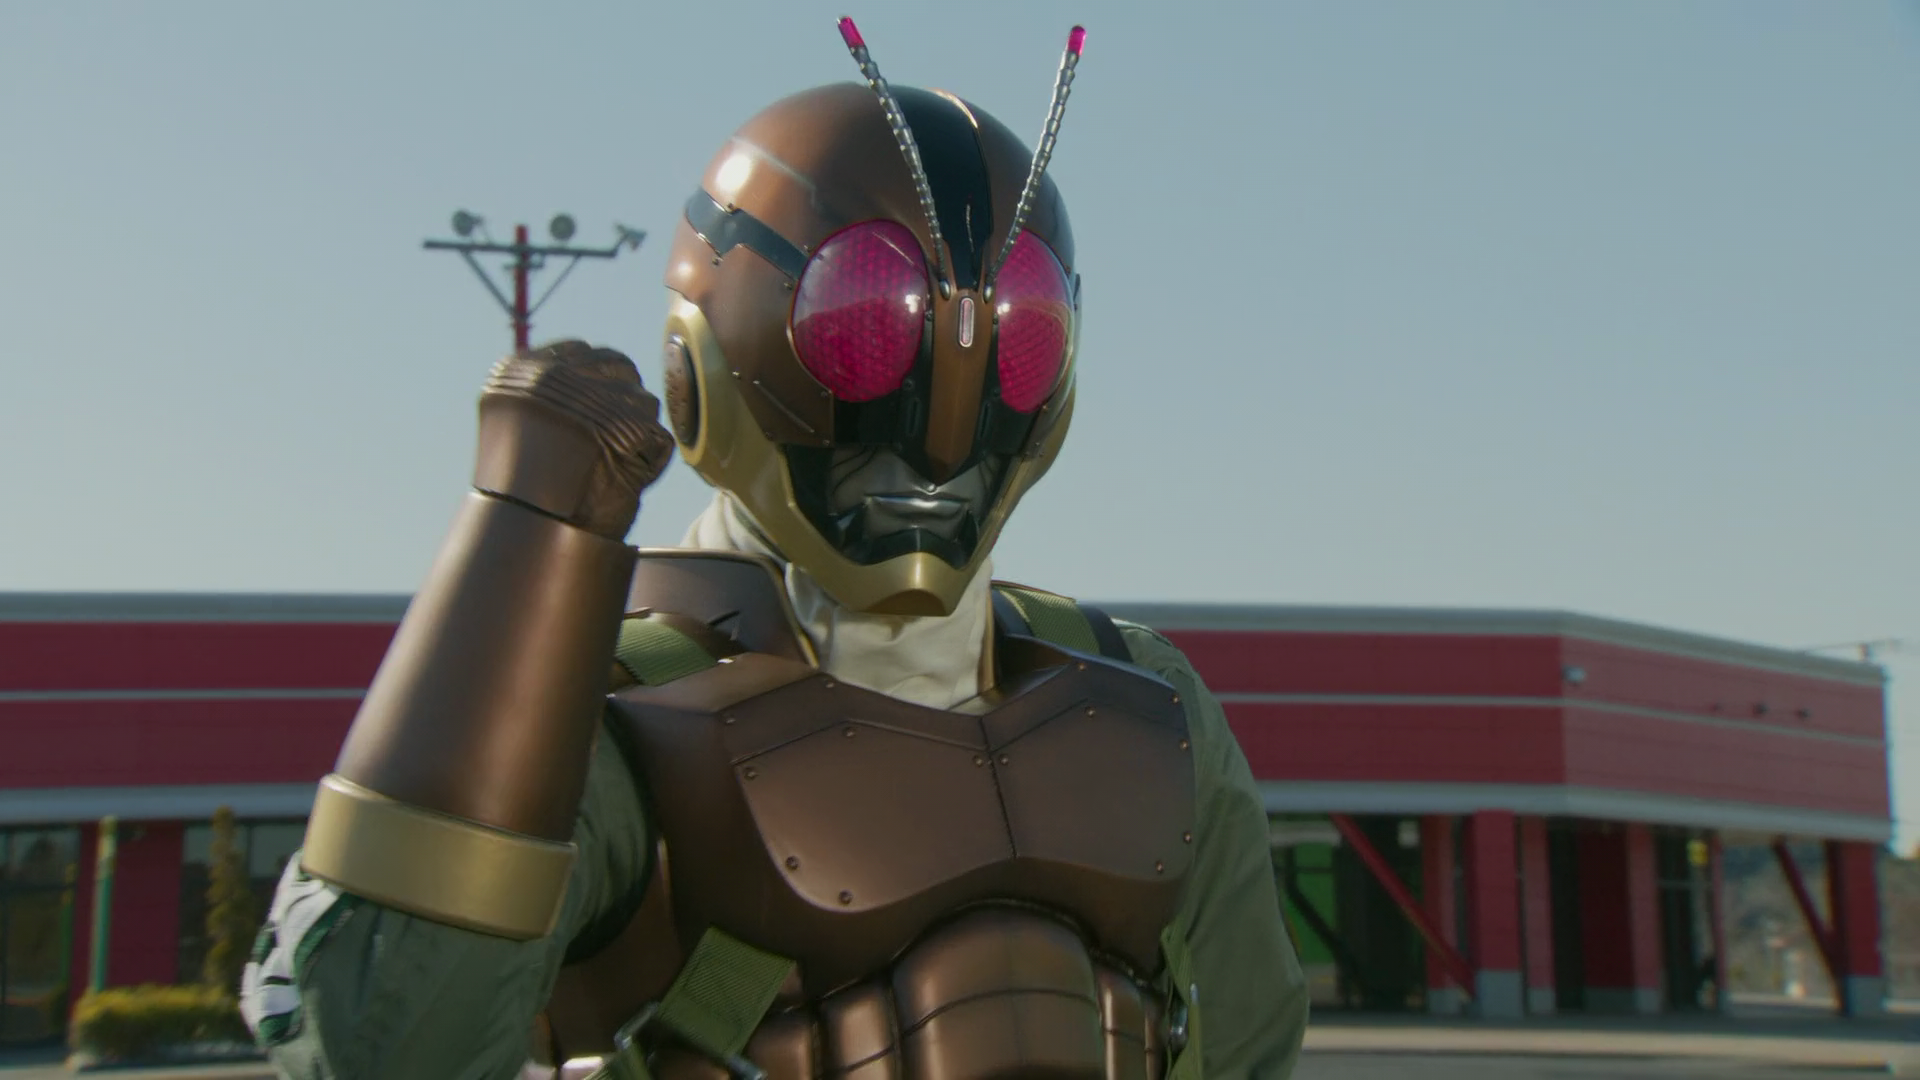 http://vignette2.wikia.nocookie.net/kamenrider/images/3/30/Rider_4_Profile.png/revision/latest?cb=20160922125256